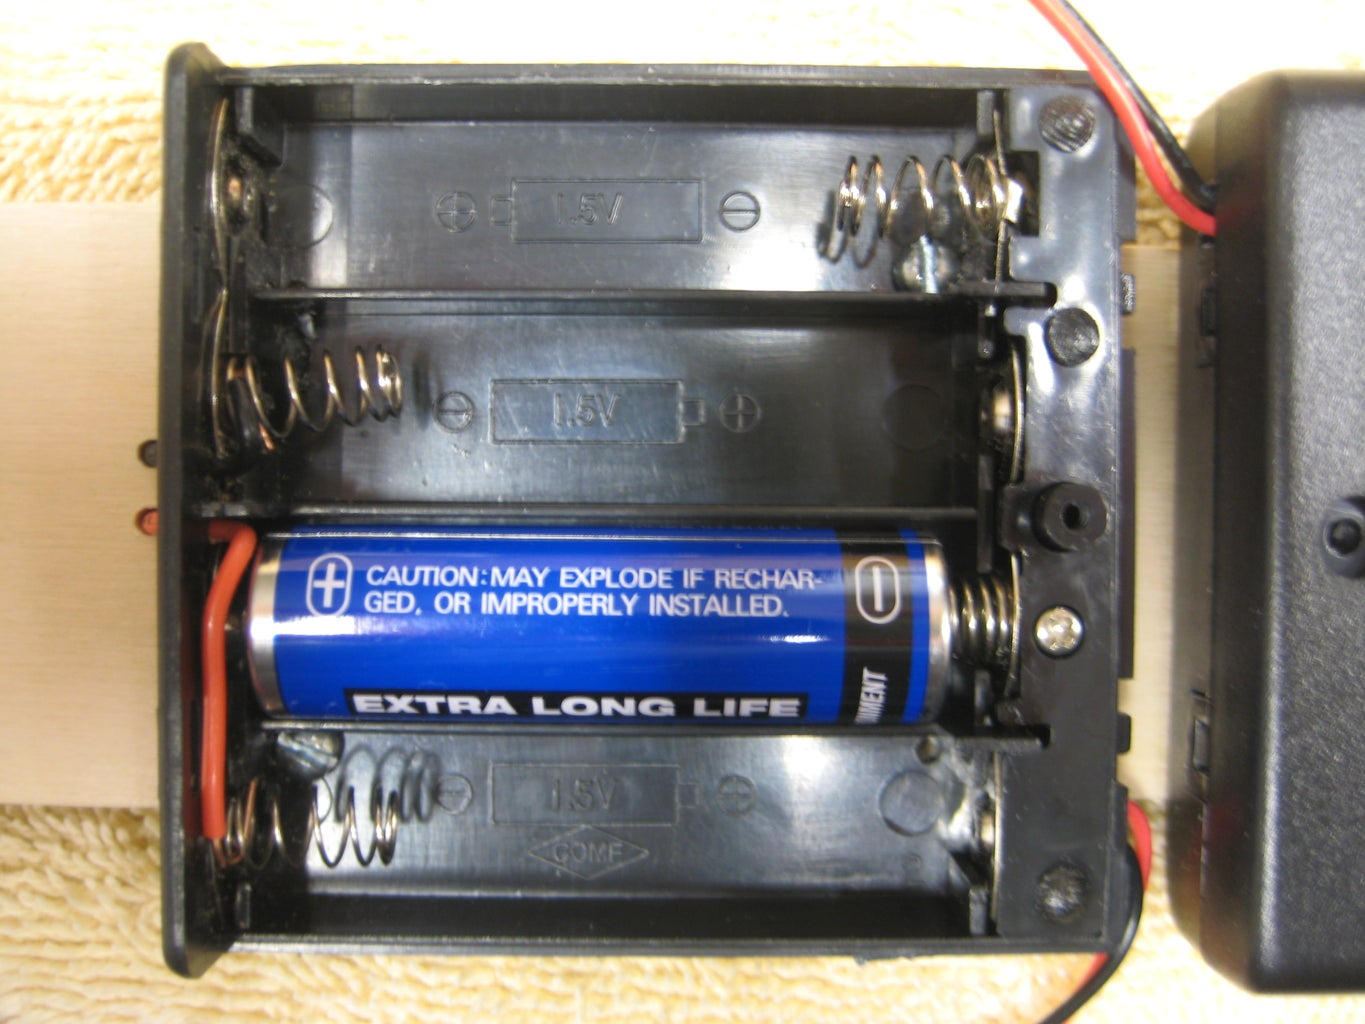 Add the Battery Holders